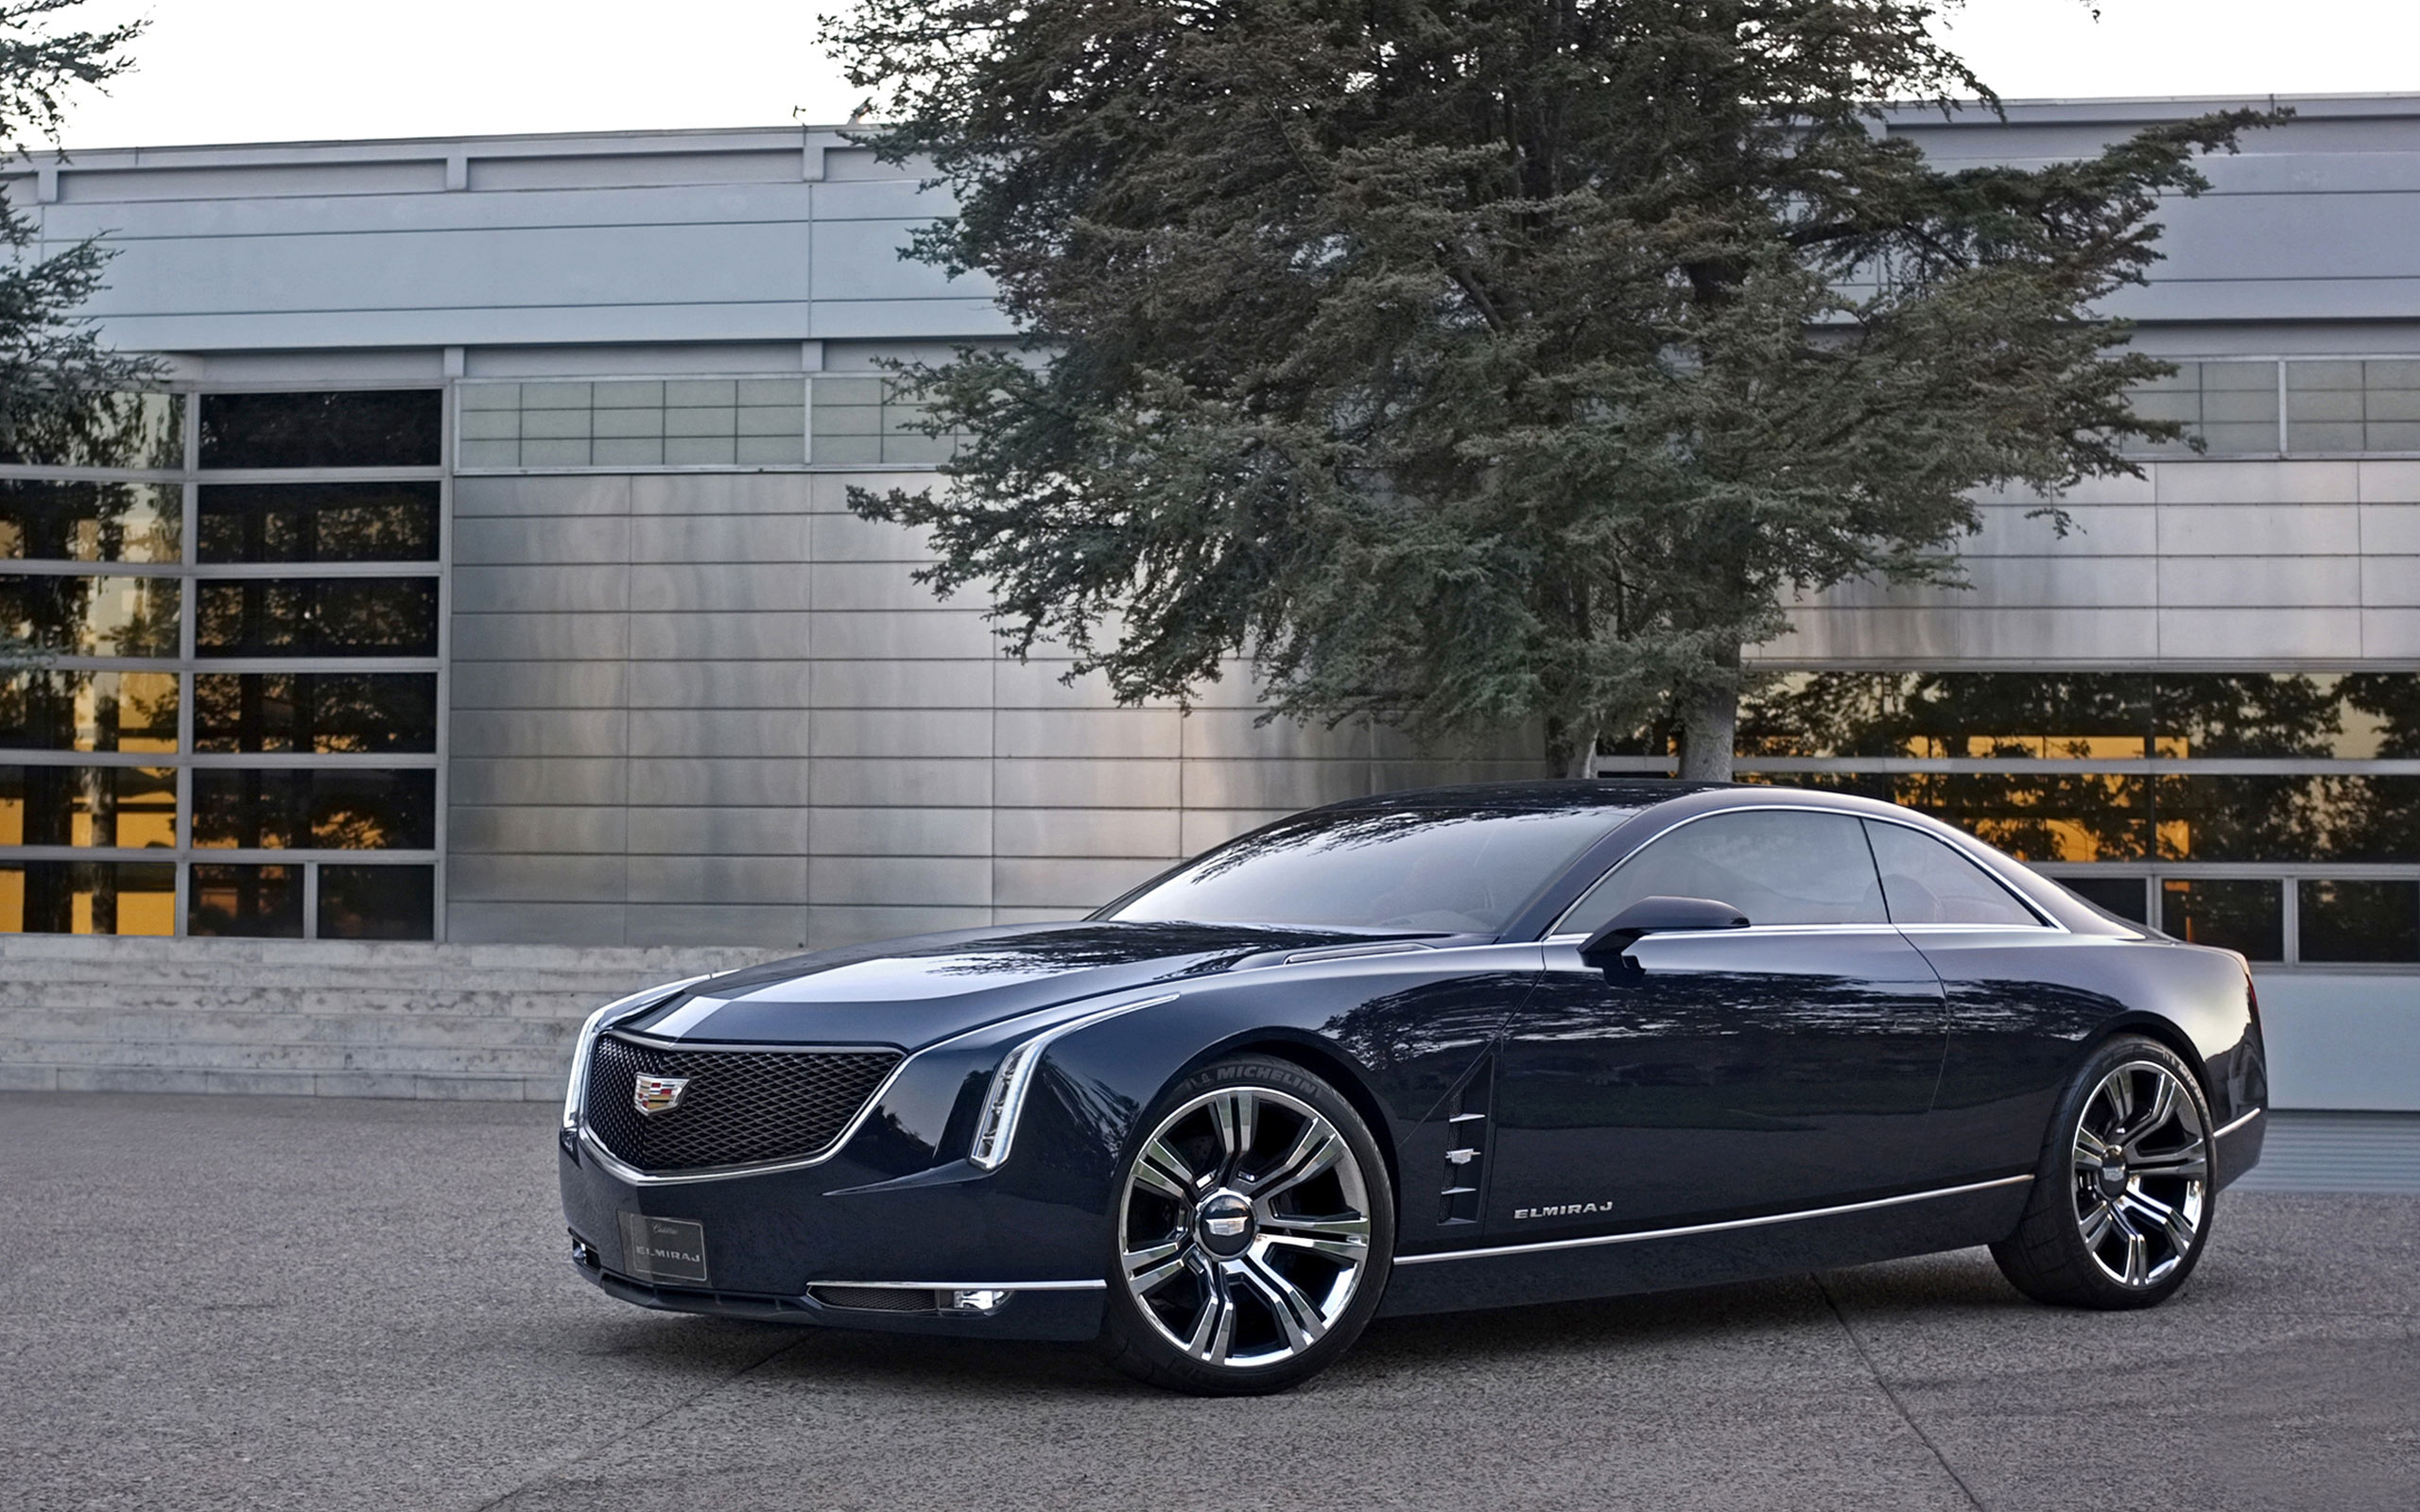 Cadillac Elmiraj Wallpaper